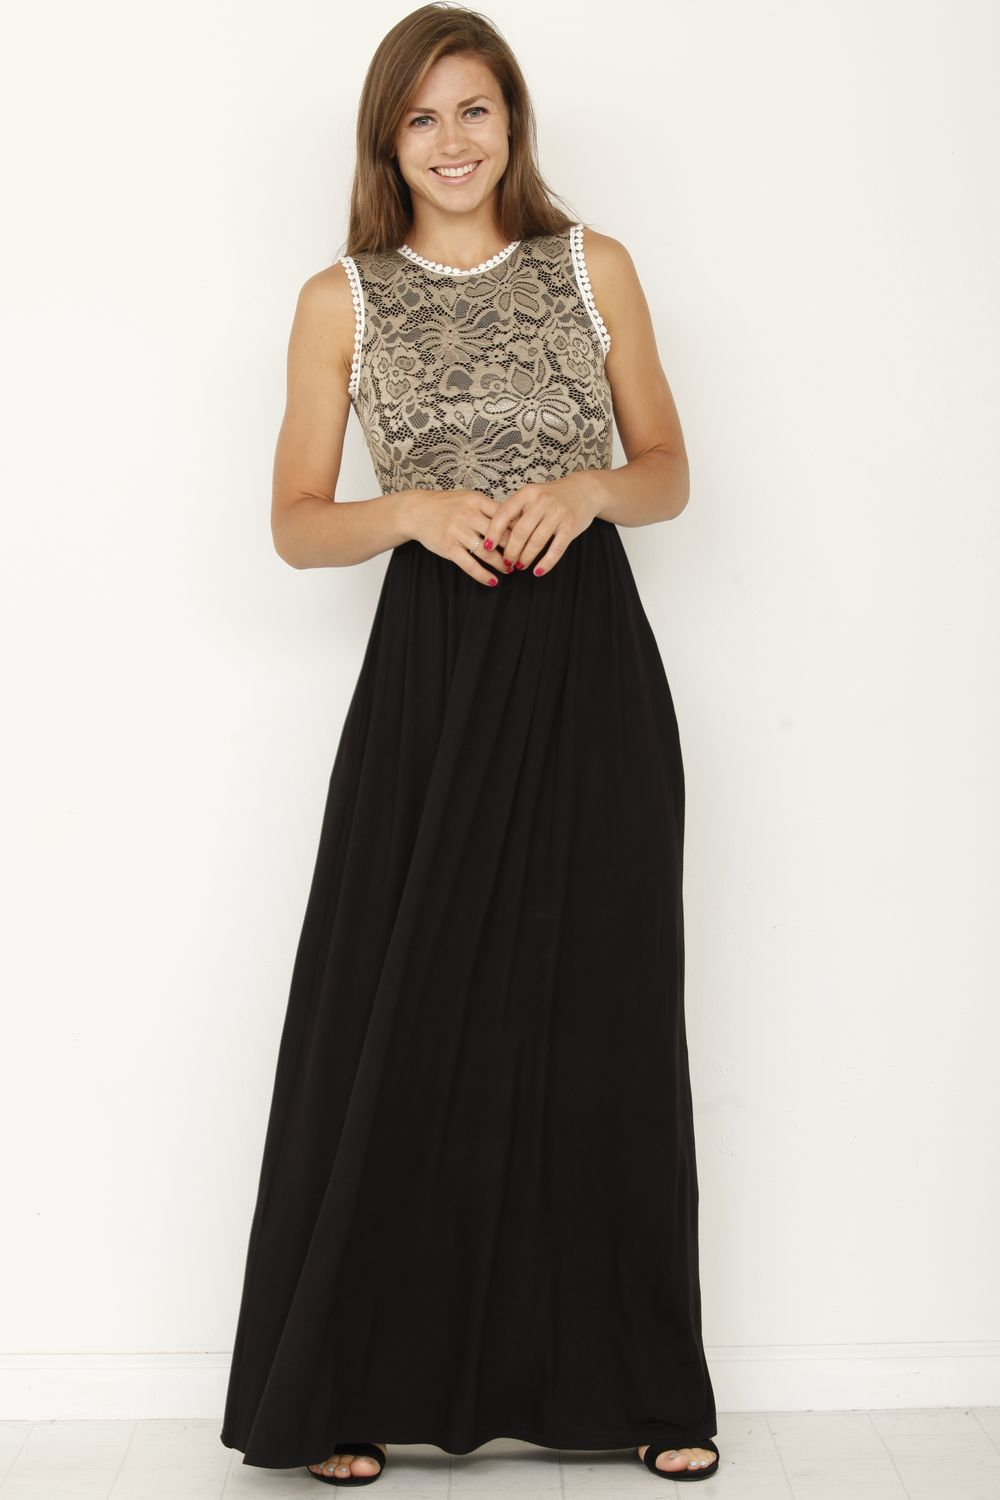 Black & Gold Lace Maxi Dress